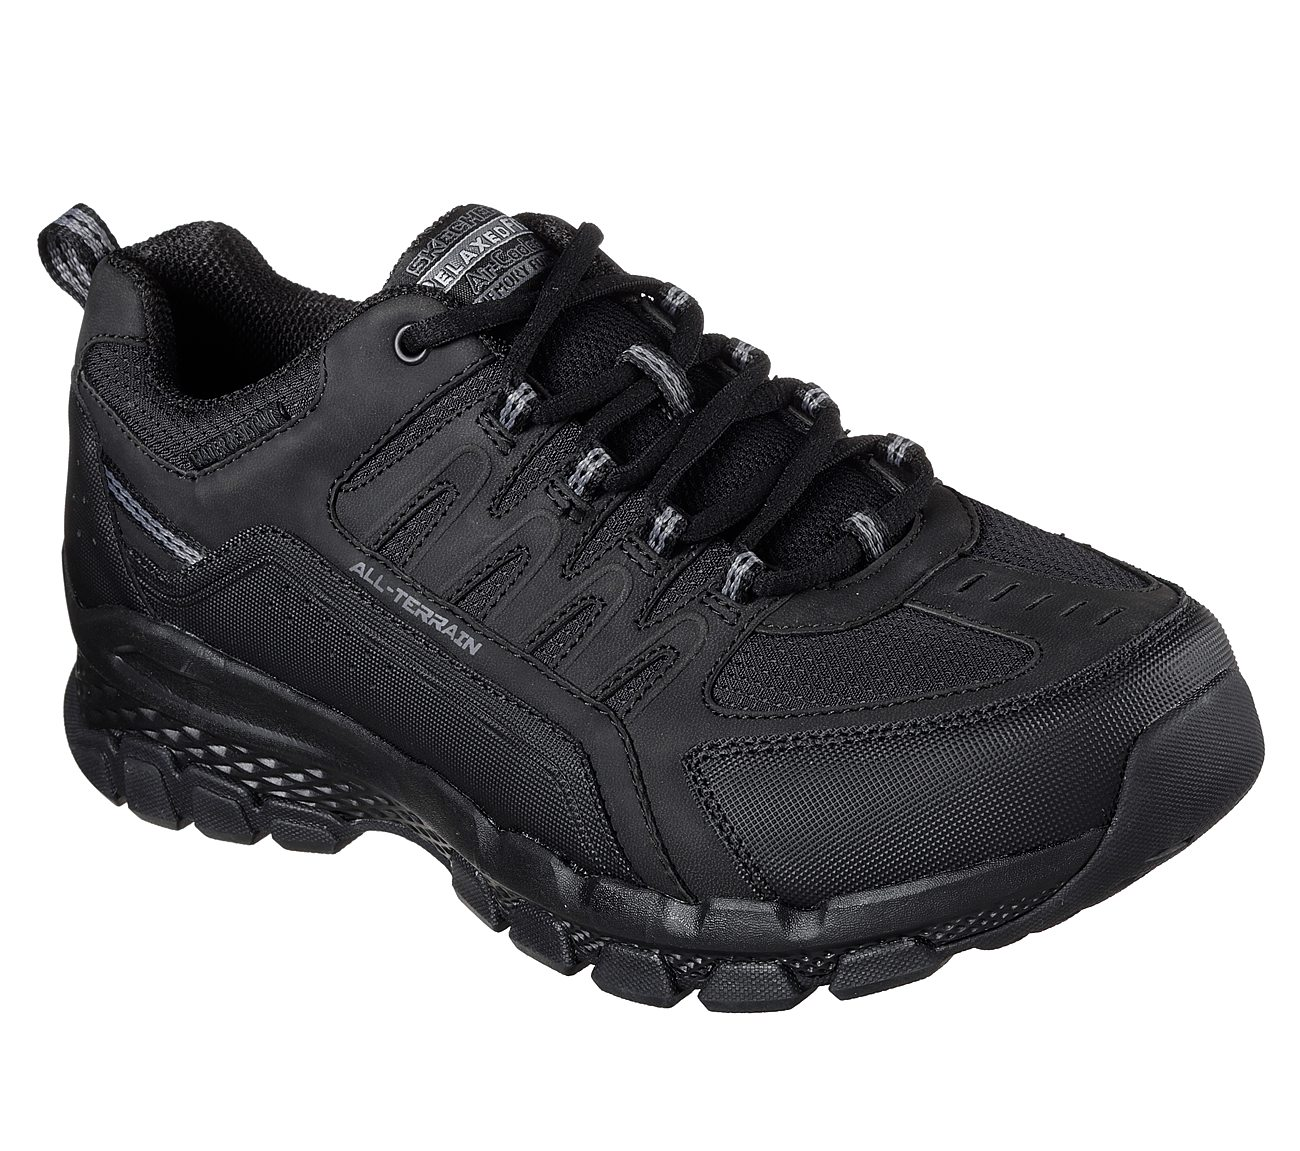 2017 Ireland Skechers Just relax Black Black Shoes On Sales